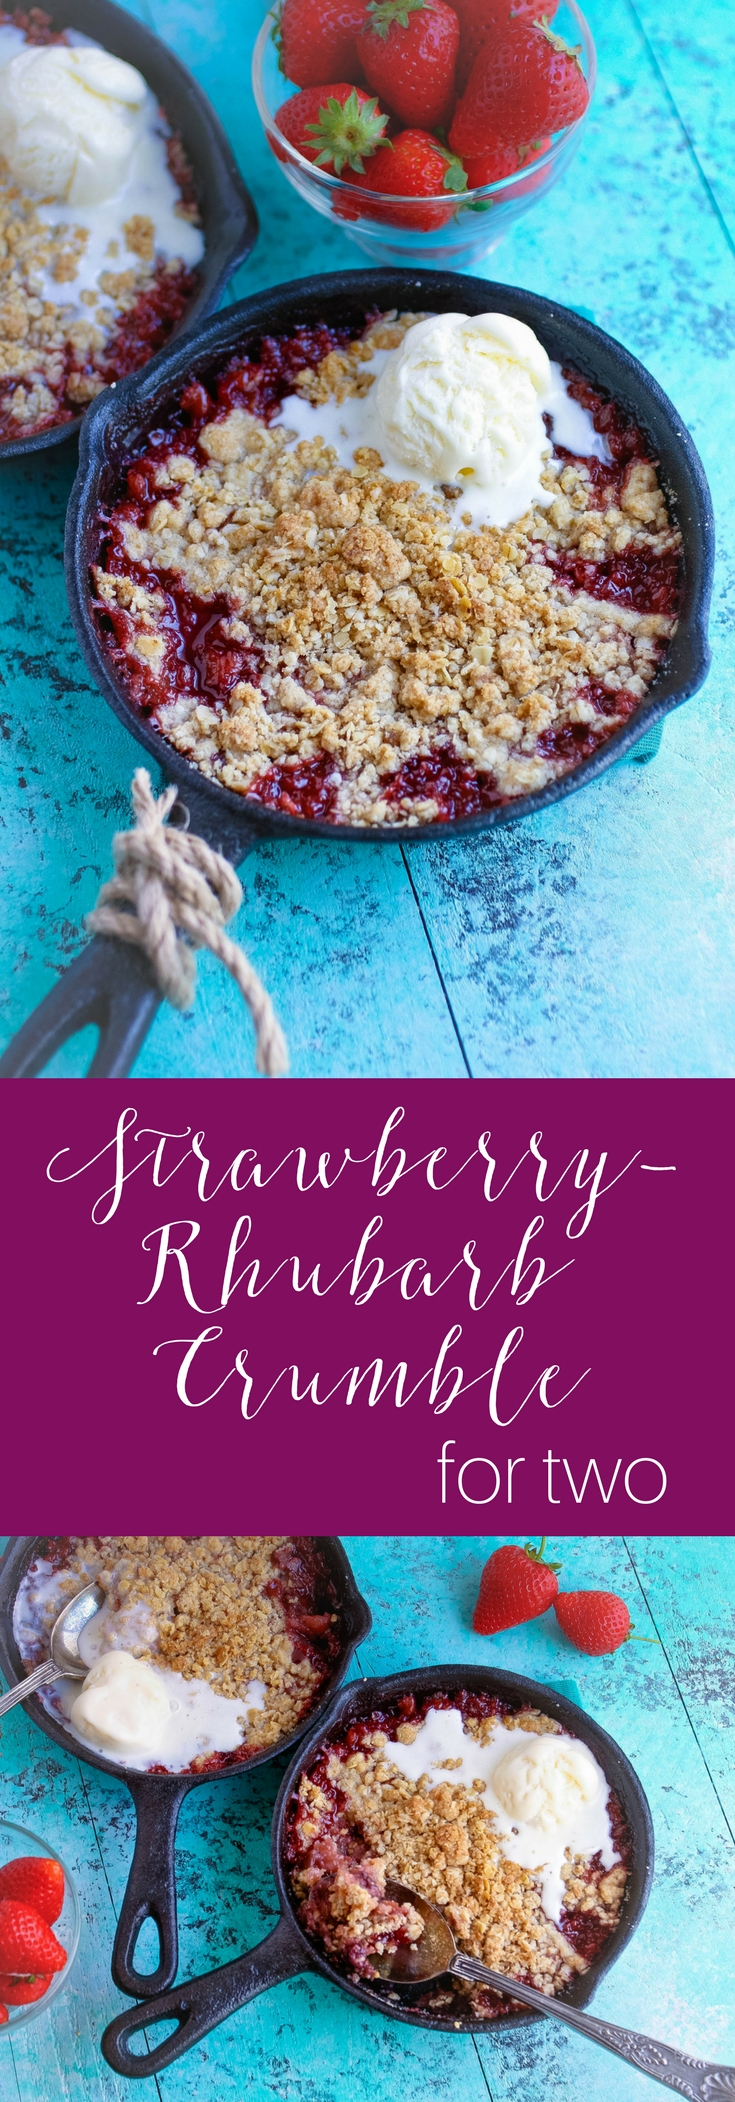 Strawberry-Rhubarb Crumble for Two is a fabulous seasonal dessert. Strawberry-Rhubarb Crumble for Two is perfect when there are only a few of you looking for a wonderful dessert!